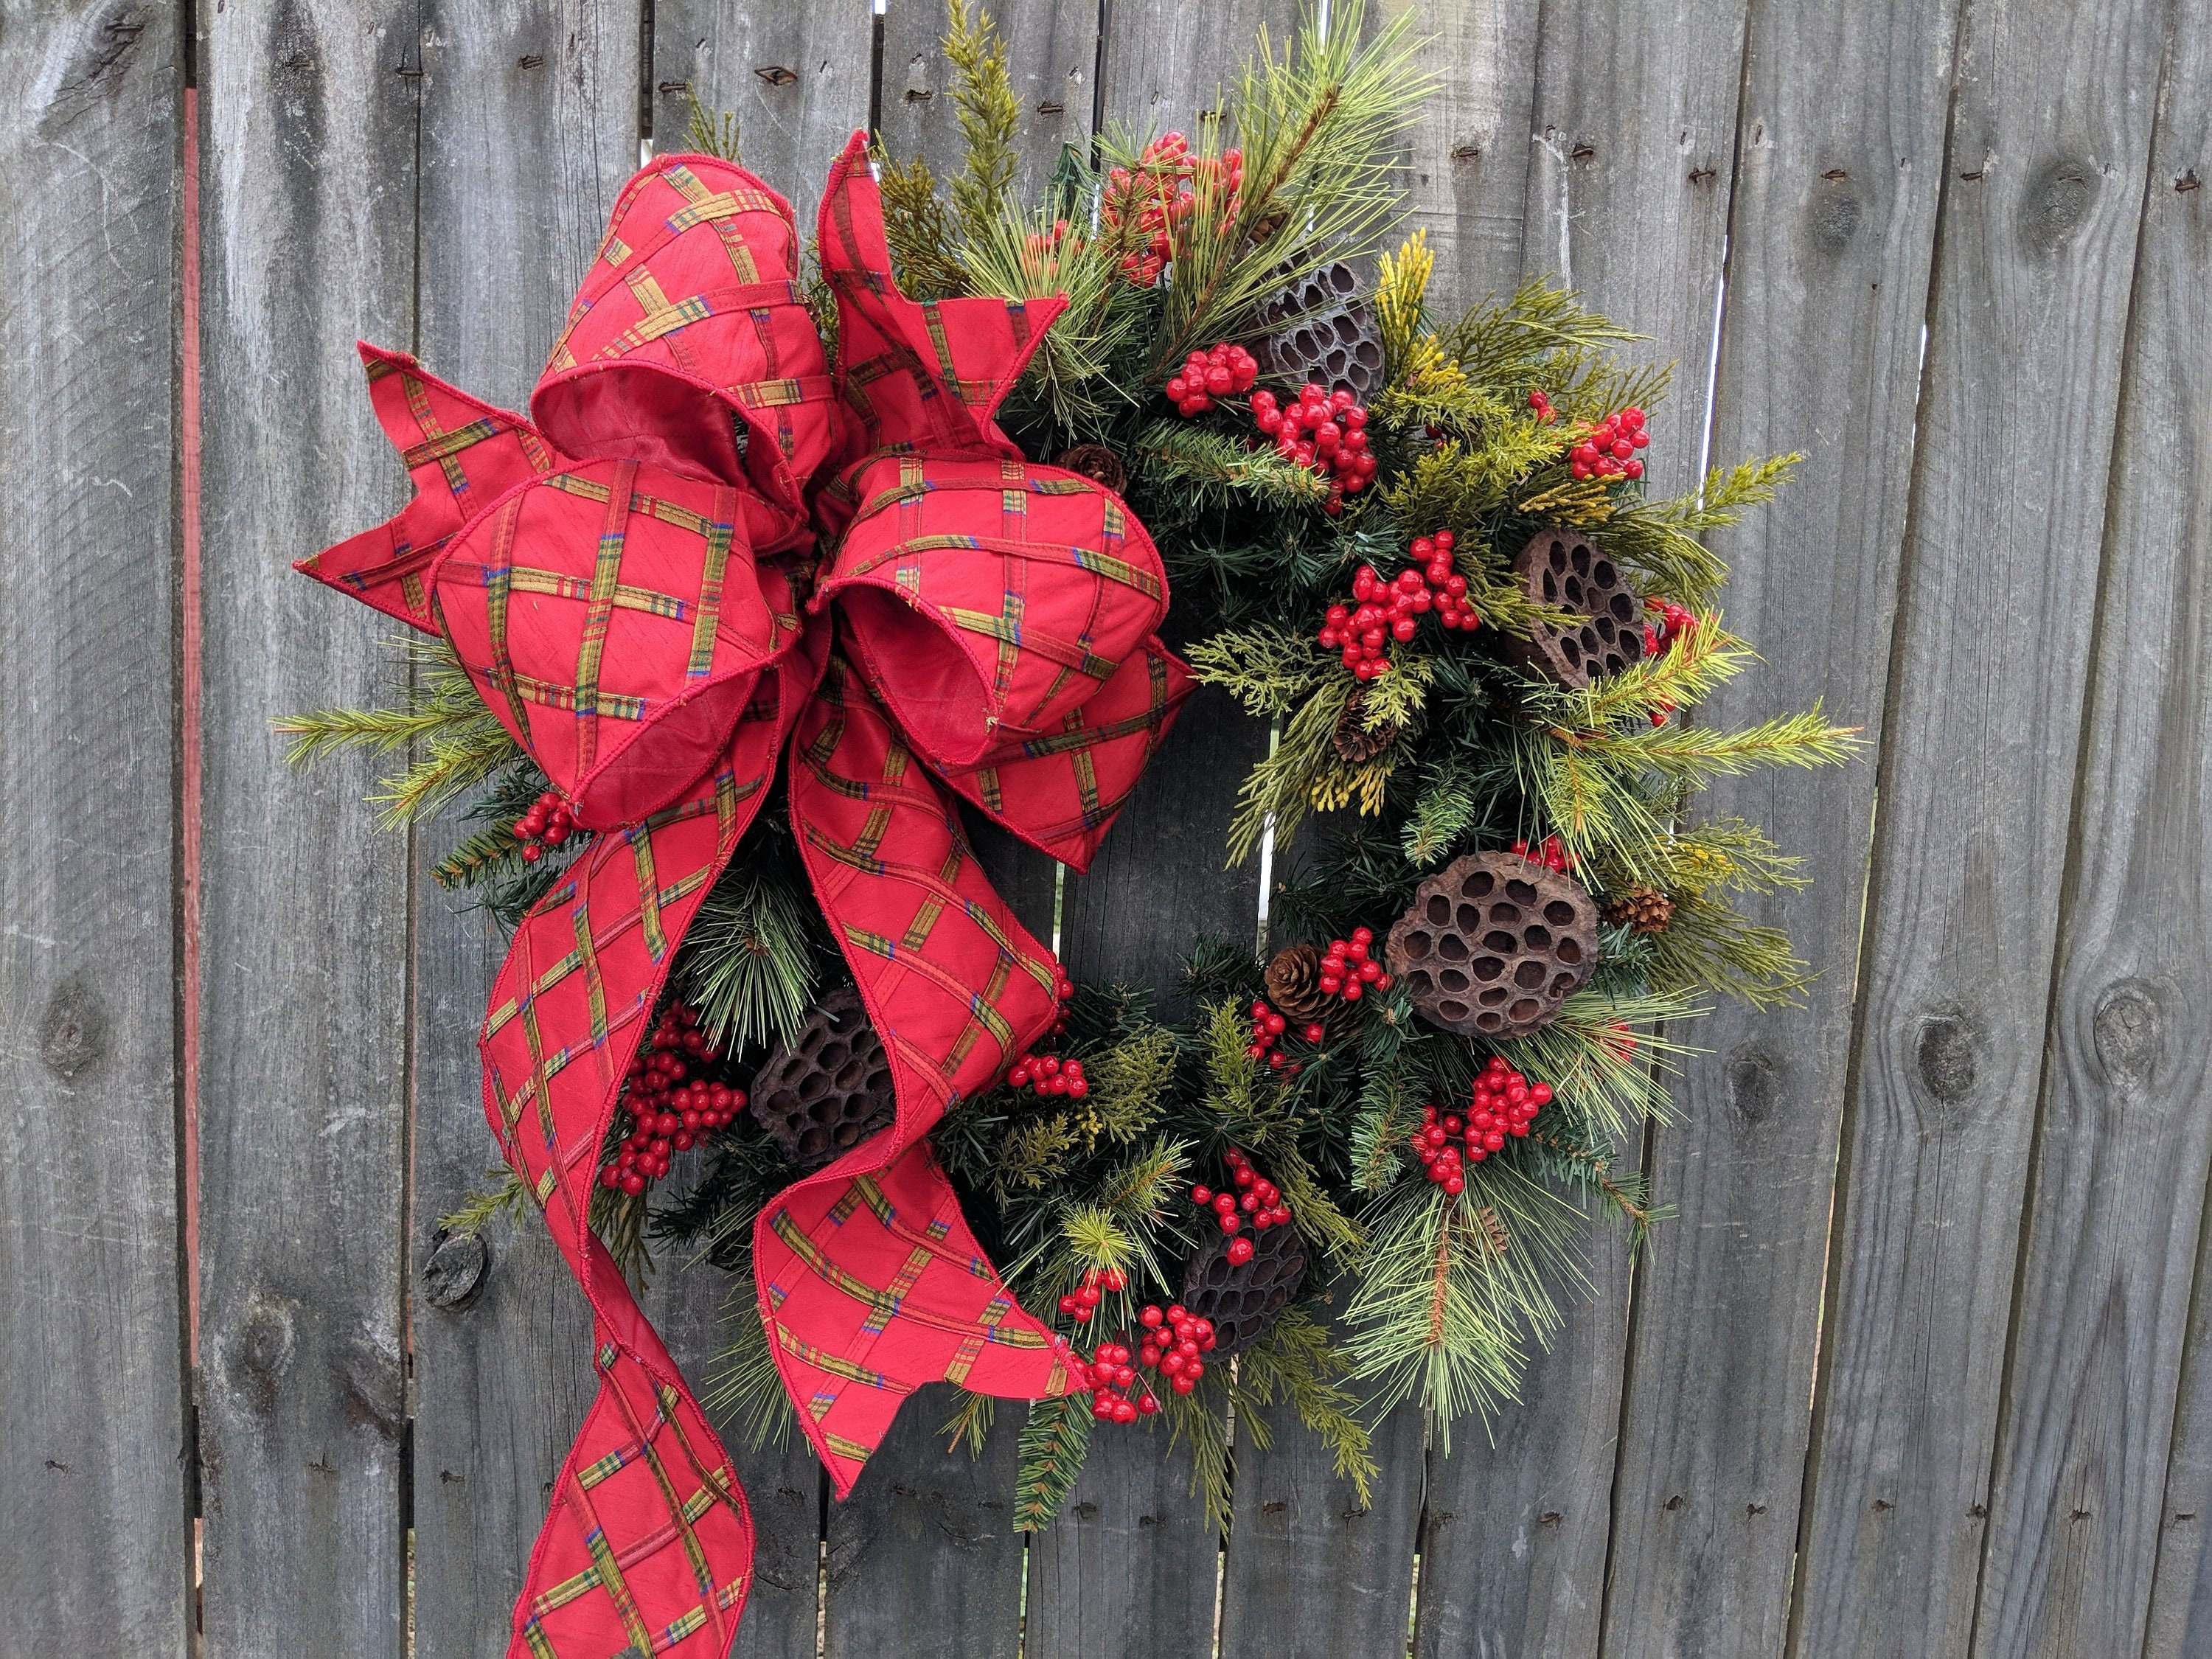 christmas wreath large bow wreath realistic christmas greenery wreath red berries elegant bright red christmas decor red berries